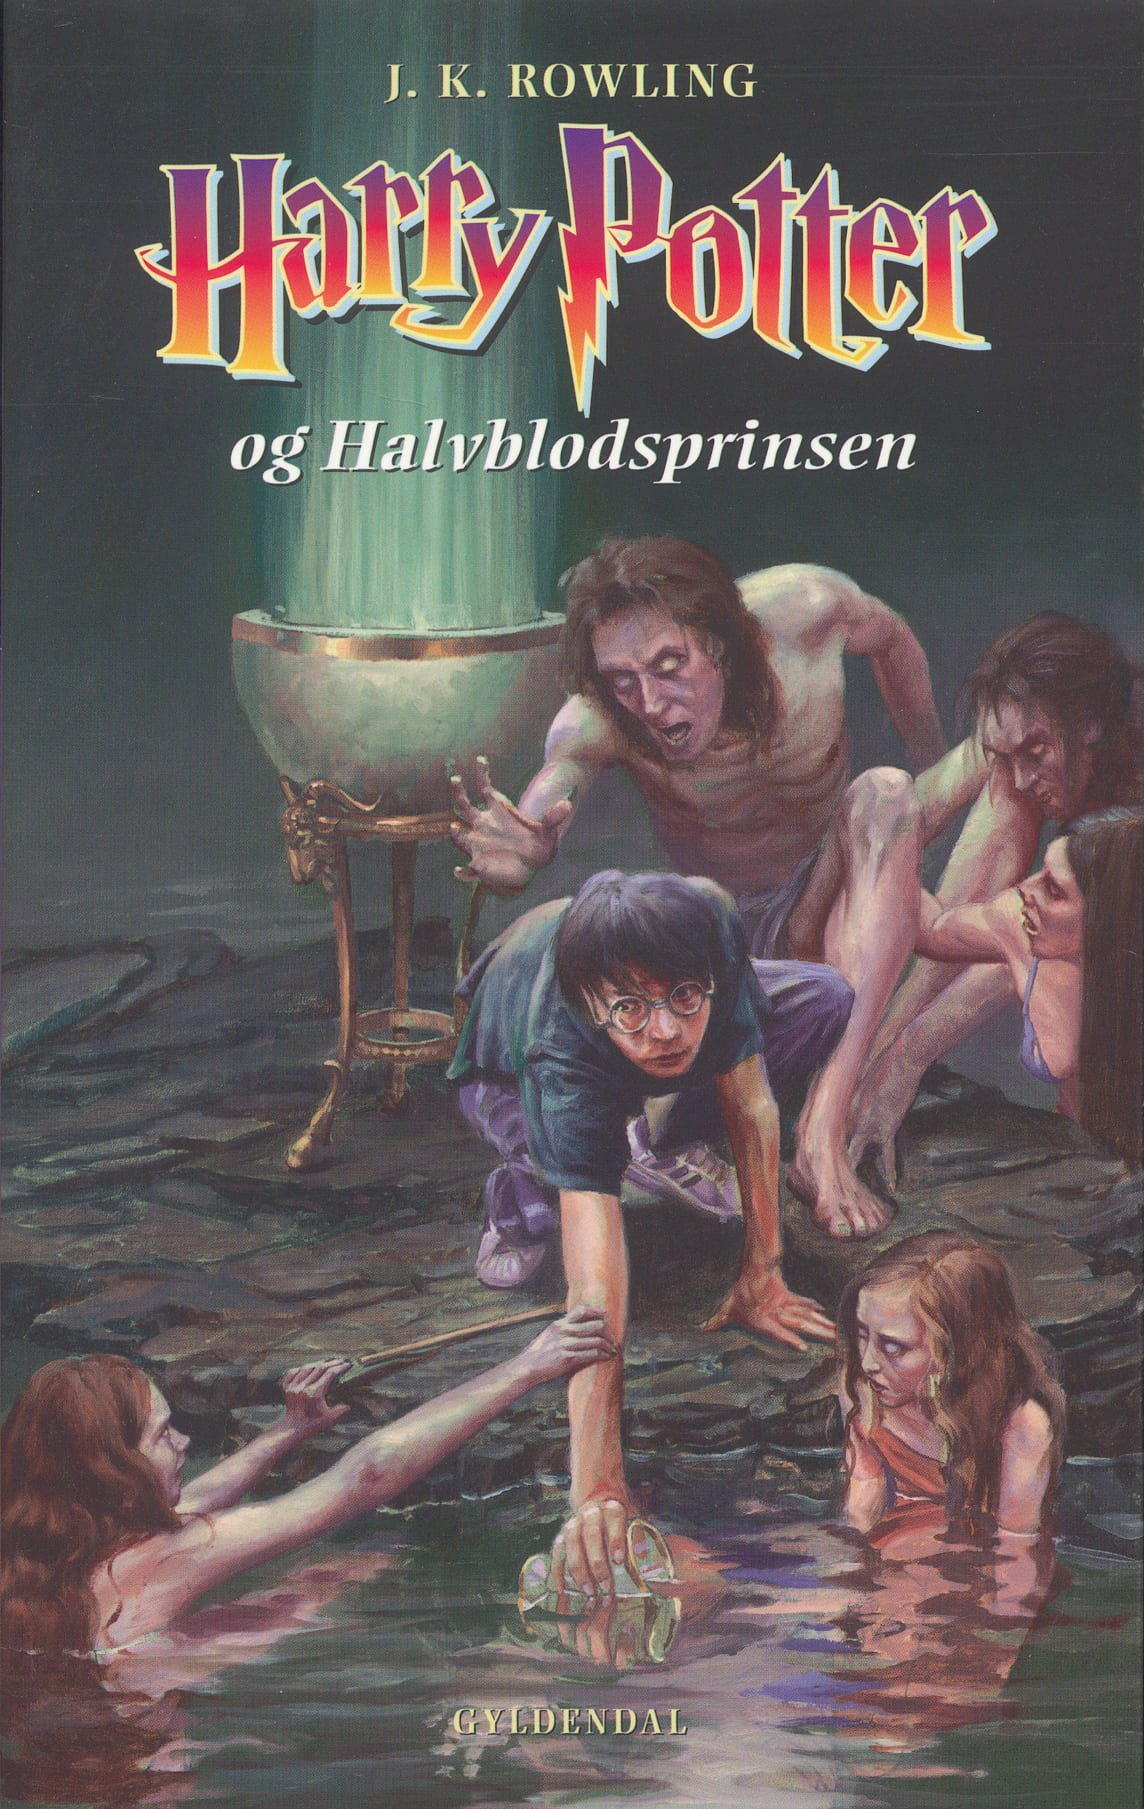 Harry Potter and the Half-Blood Prince Book Cover Denmark version